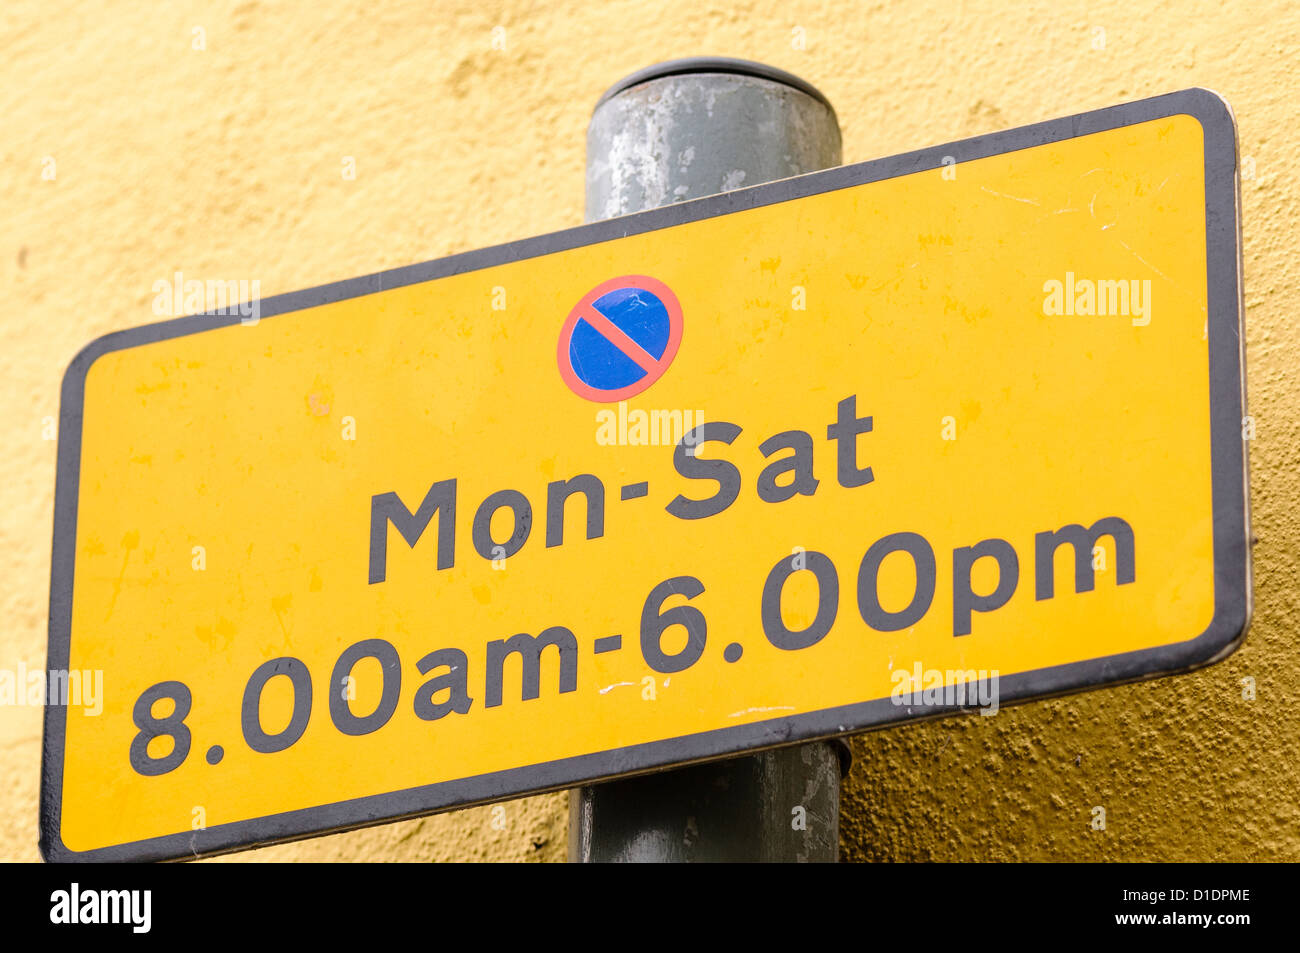 Restricted parking sign, showing parking is not permitted Monday to Saturday between 8am and 6pm - Stock Image